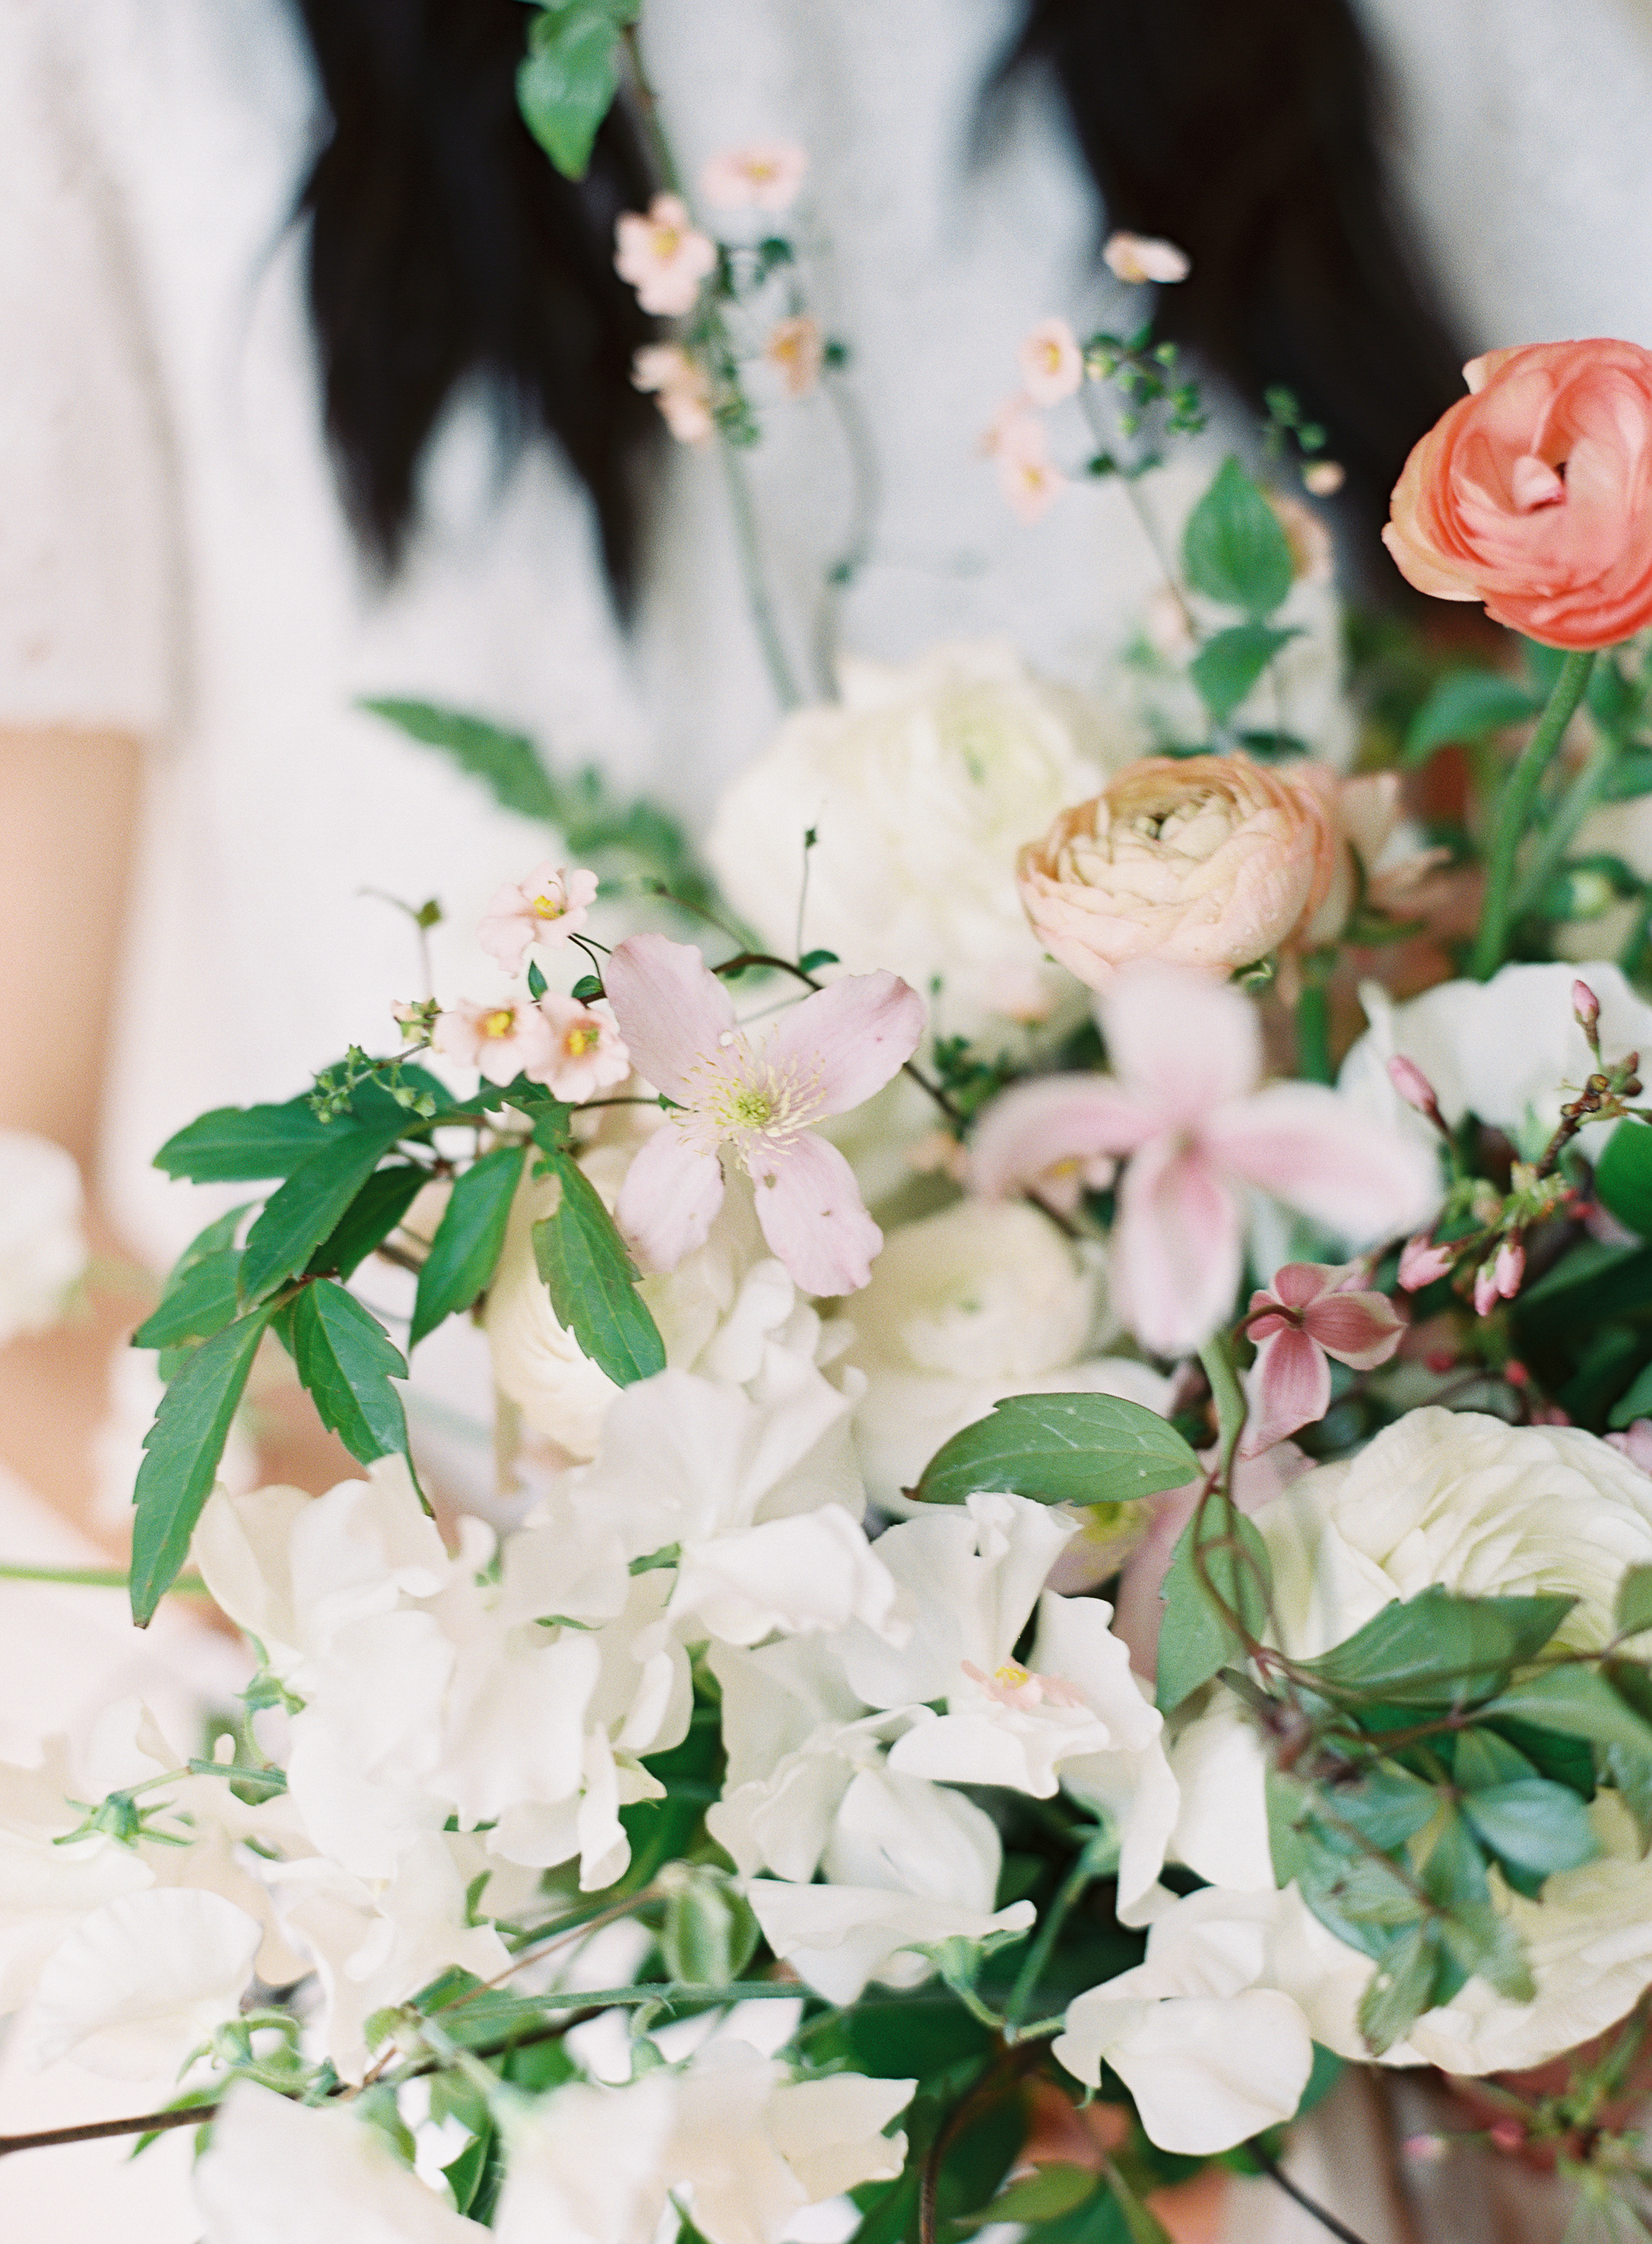 Meghan Mehan Photography | Fine Art Film Wedding Photographer | California | San Francisco | Napa | Sonoma | Santa Barbara | Big Sur | Los Angeles | Destination Wedding Photographer 050.jpg